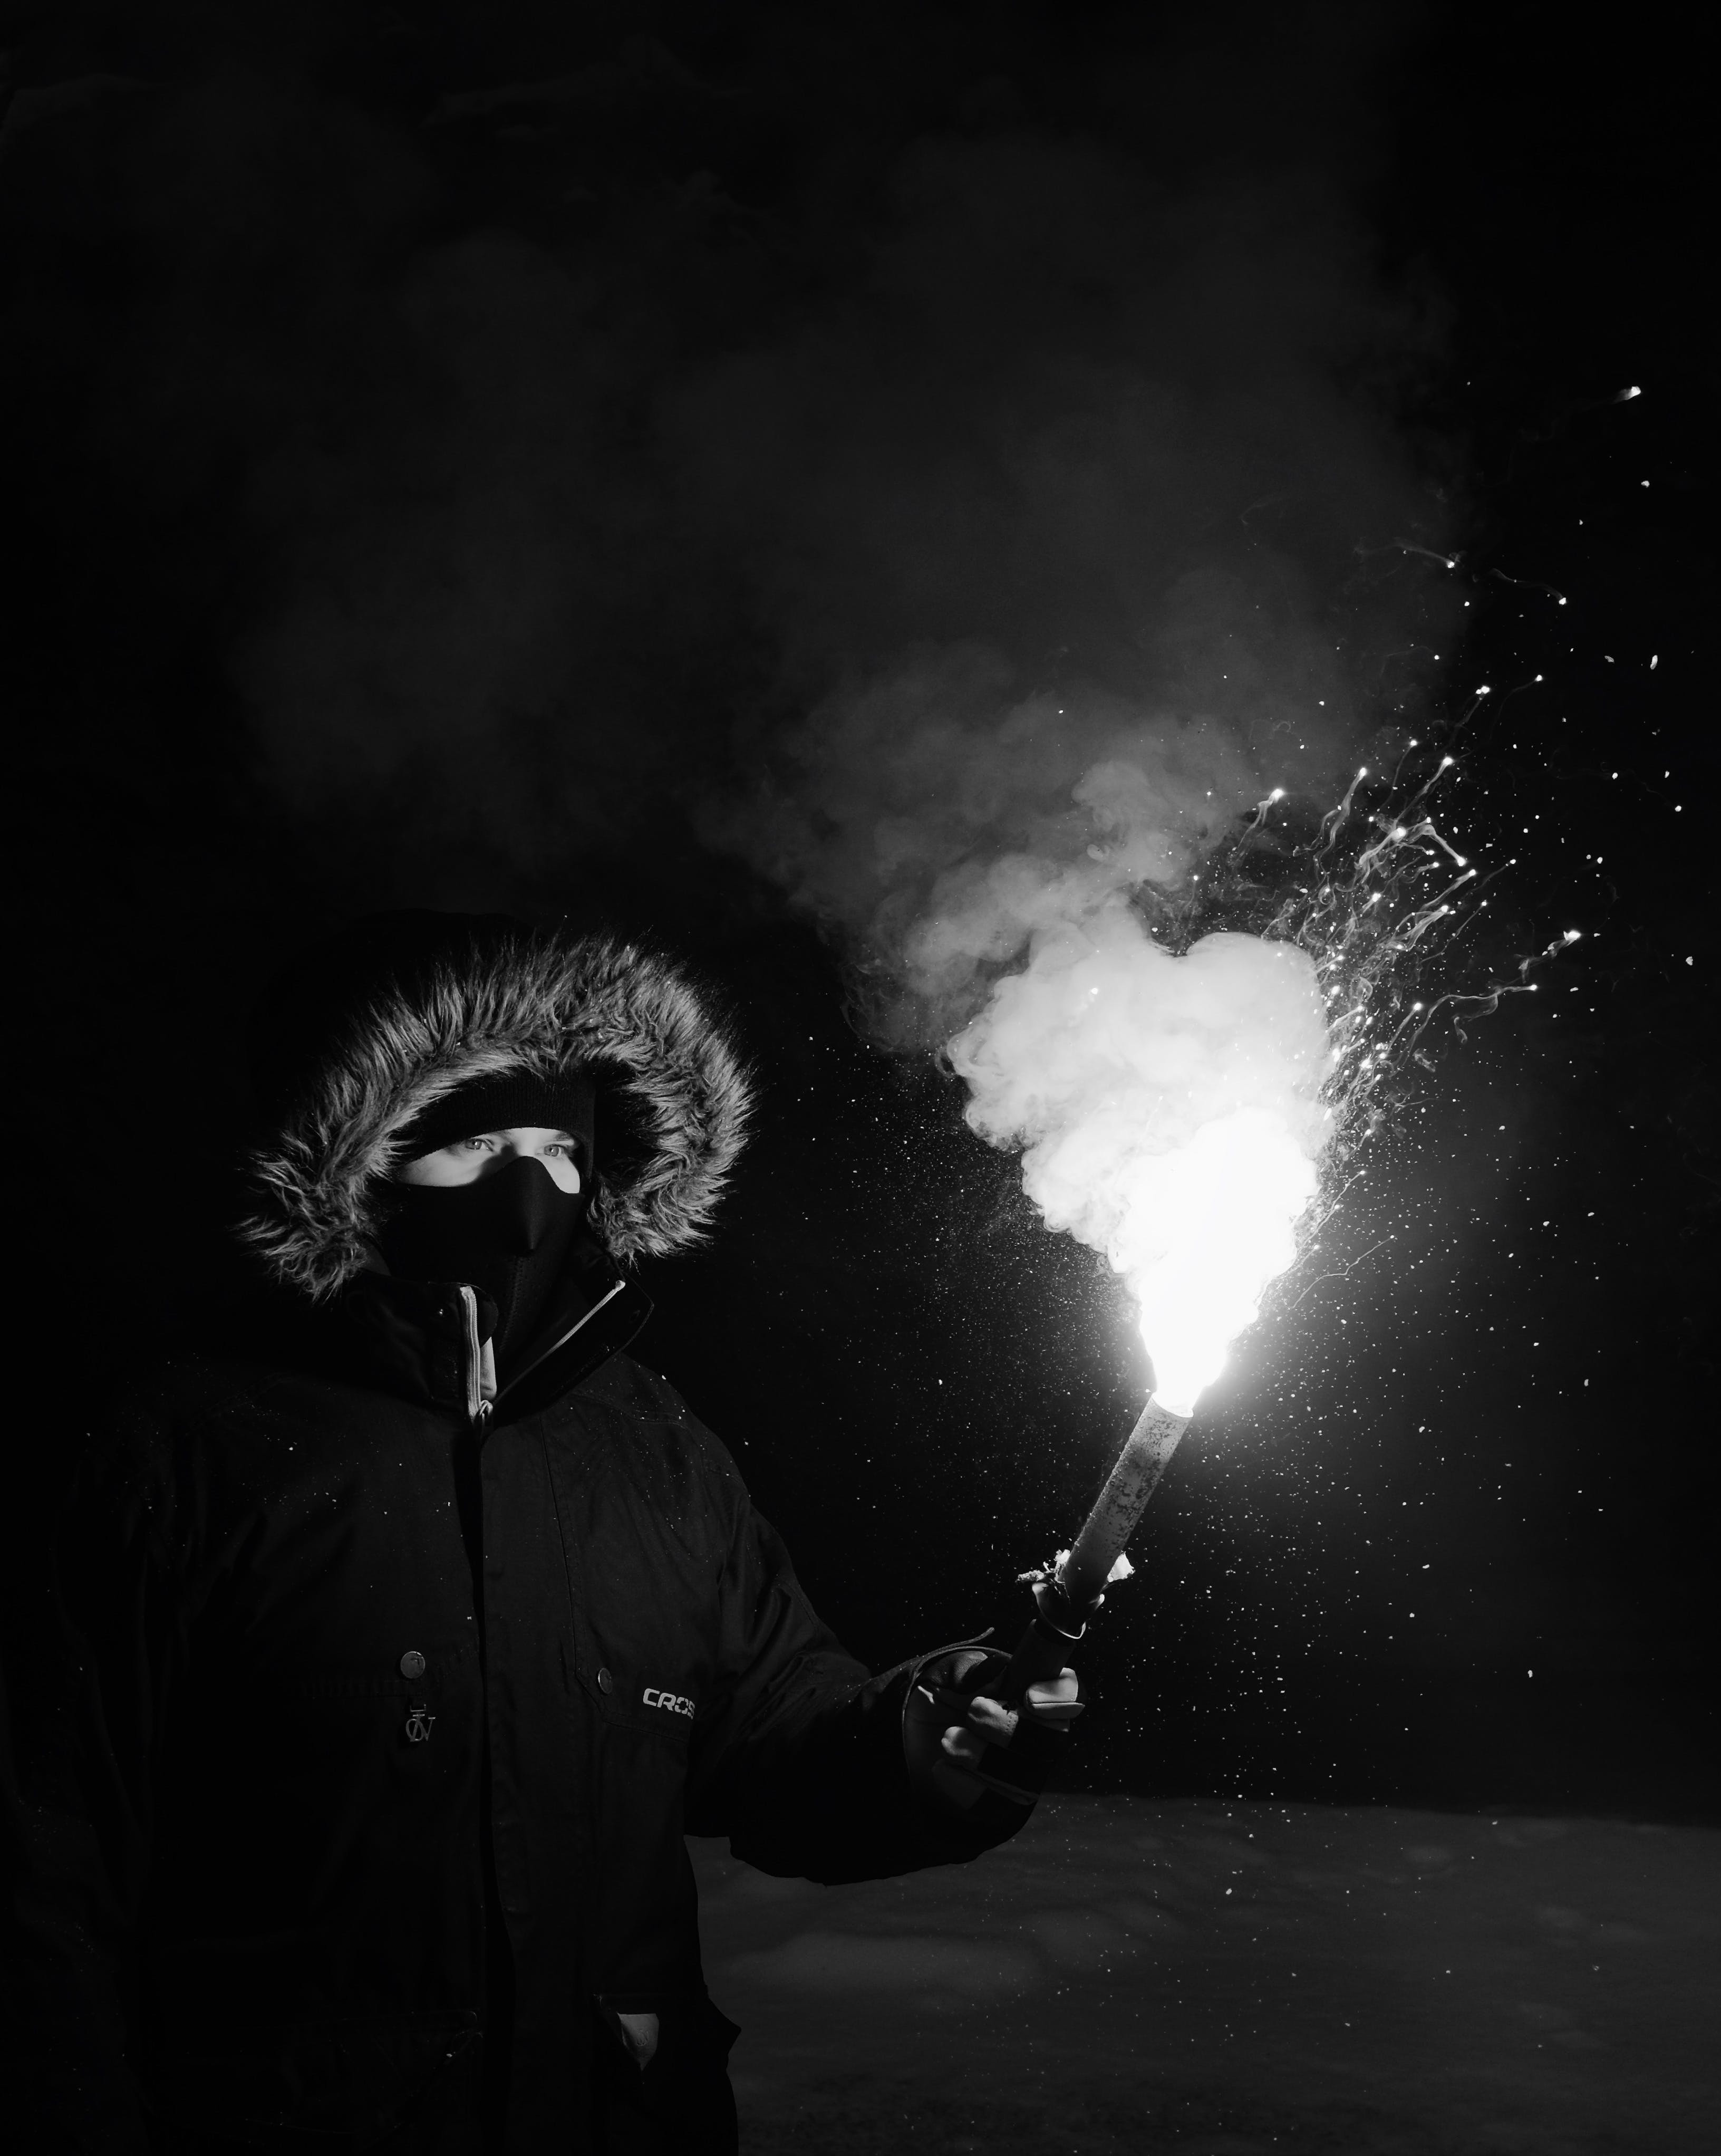 Person Wearing Coat Holding Firework